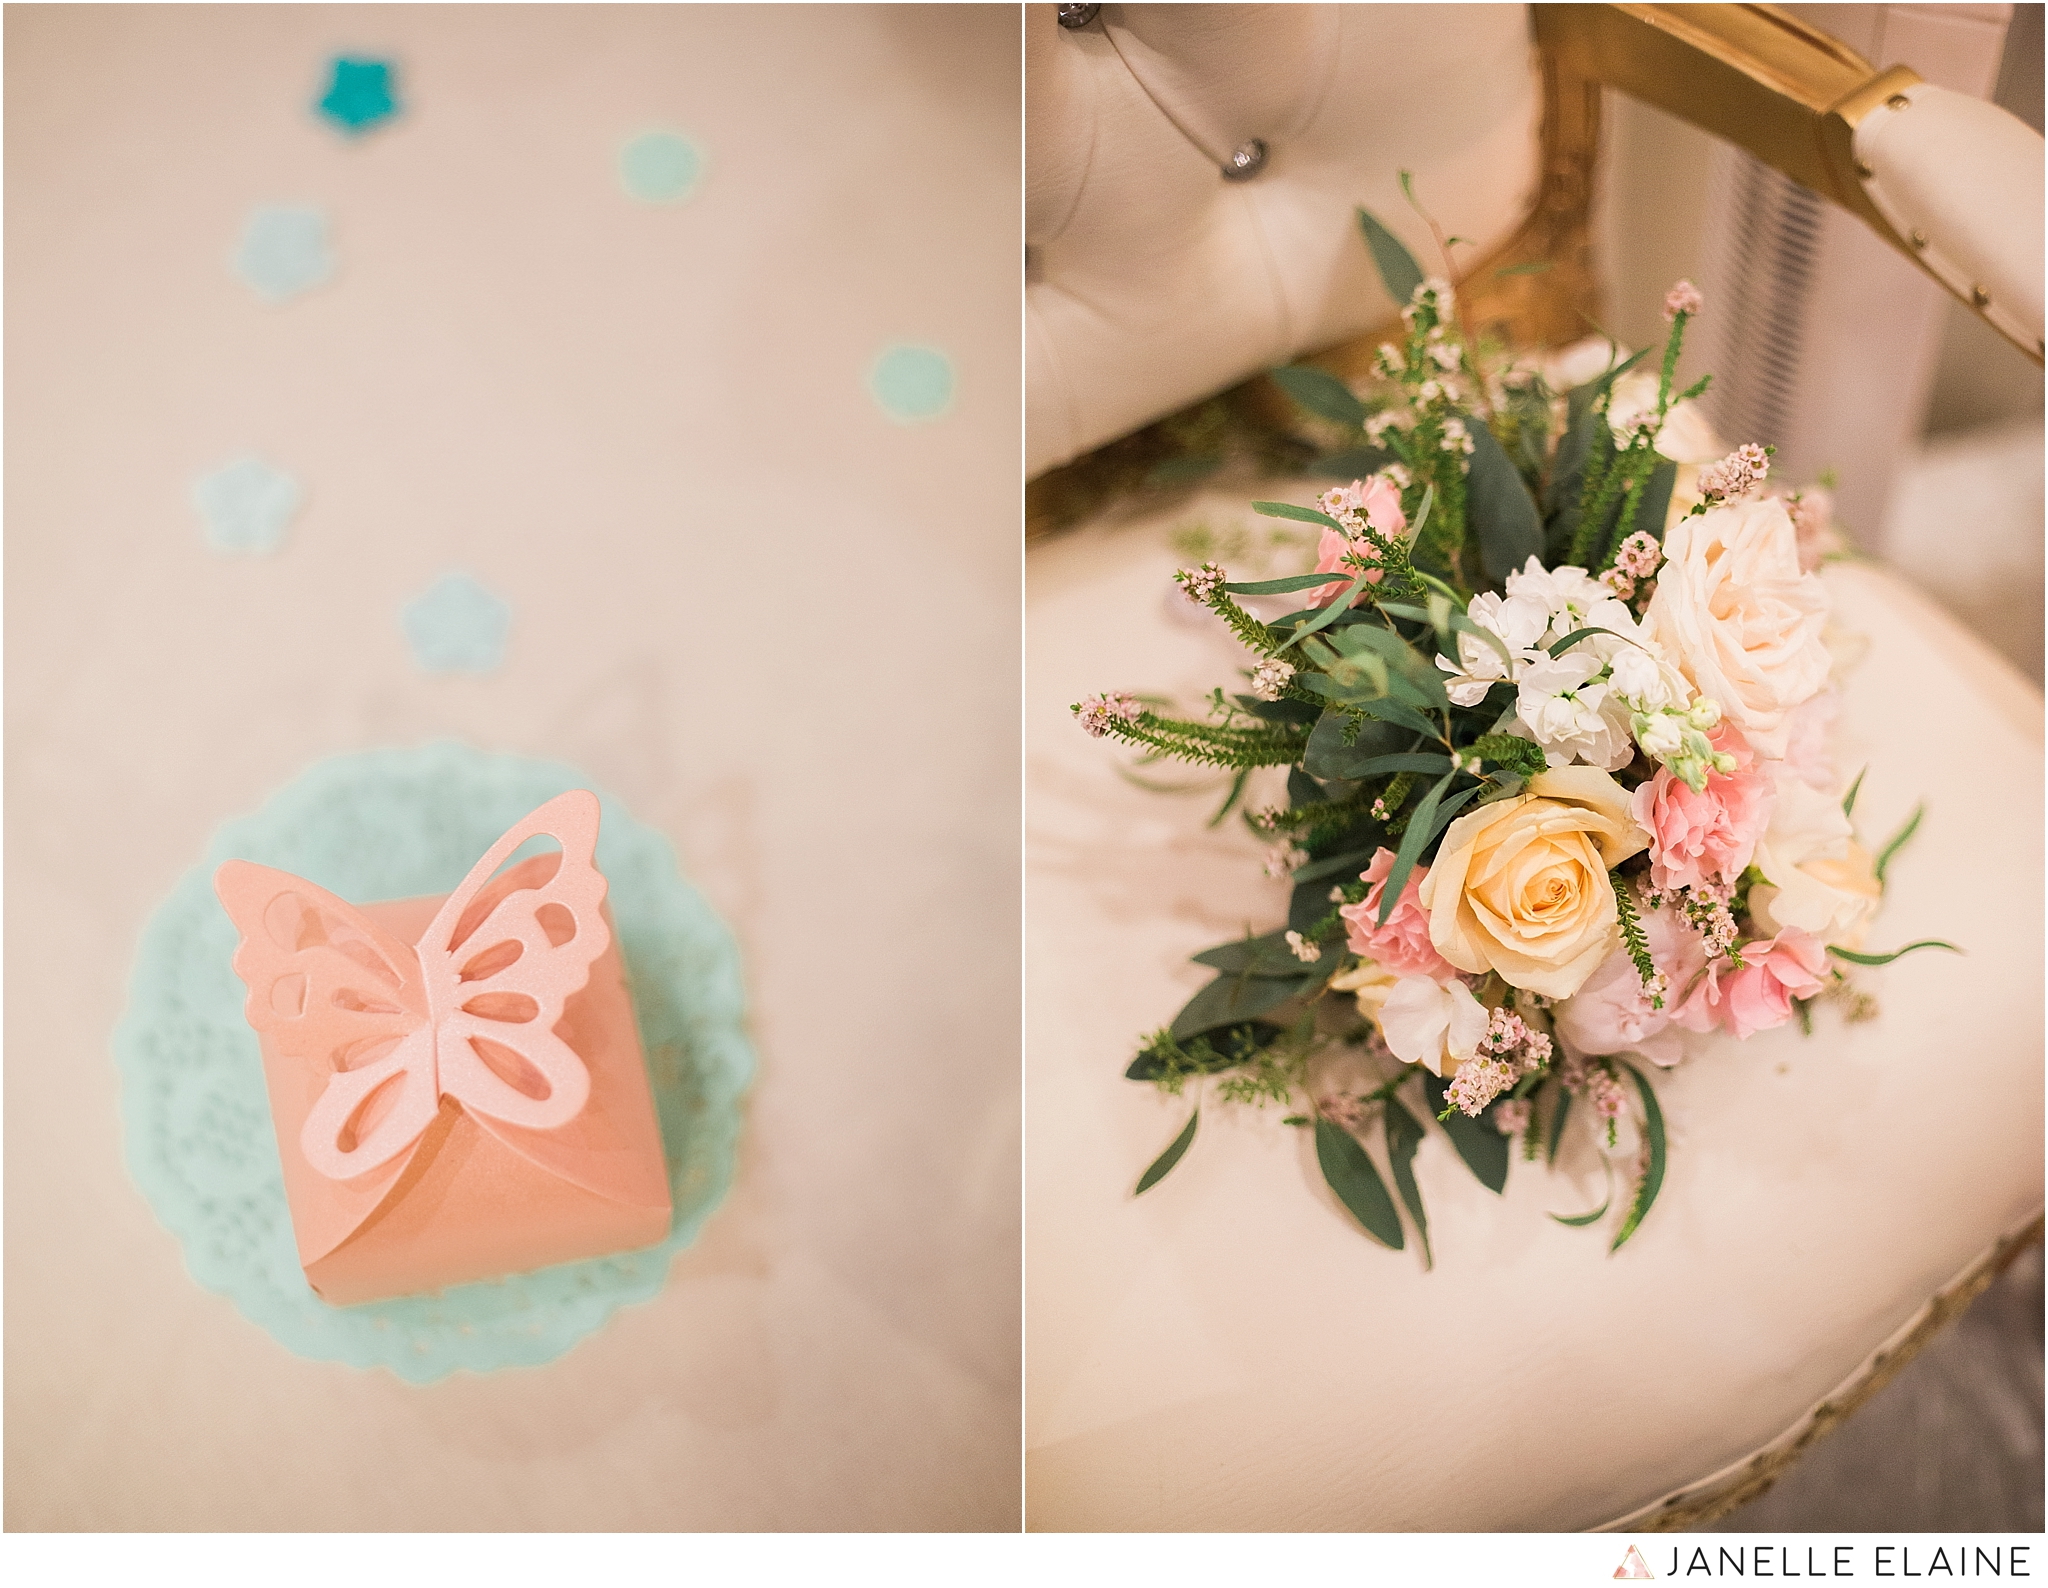 janelle elaine photography-seattle-bellevue-wedding-photographer-robinswood house-291.jpg